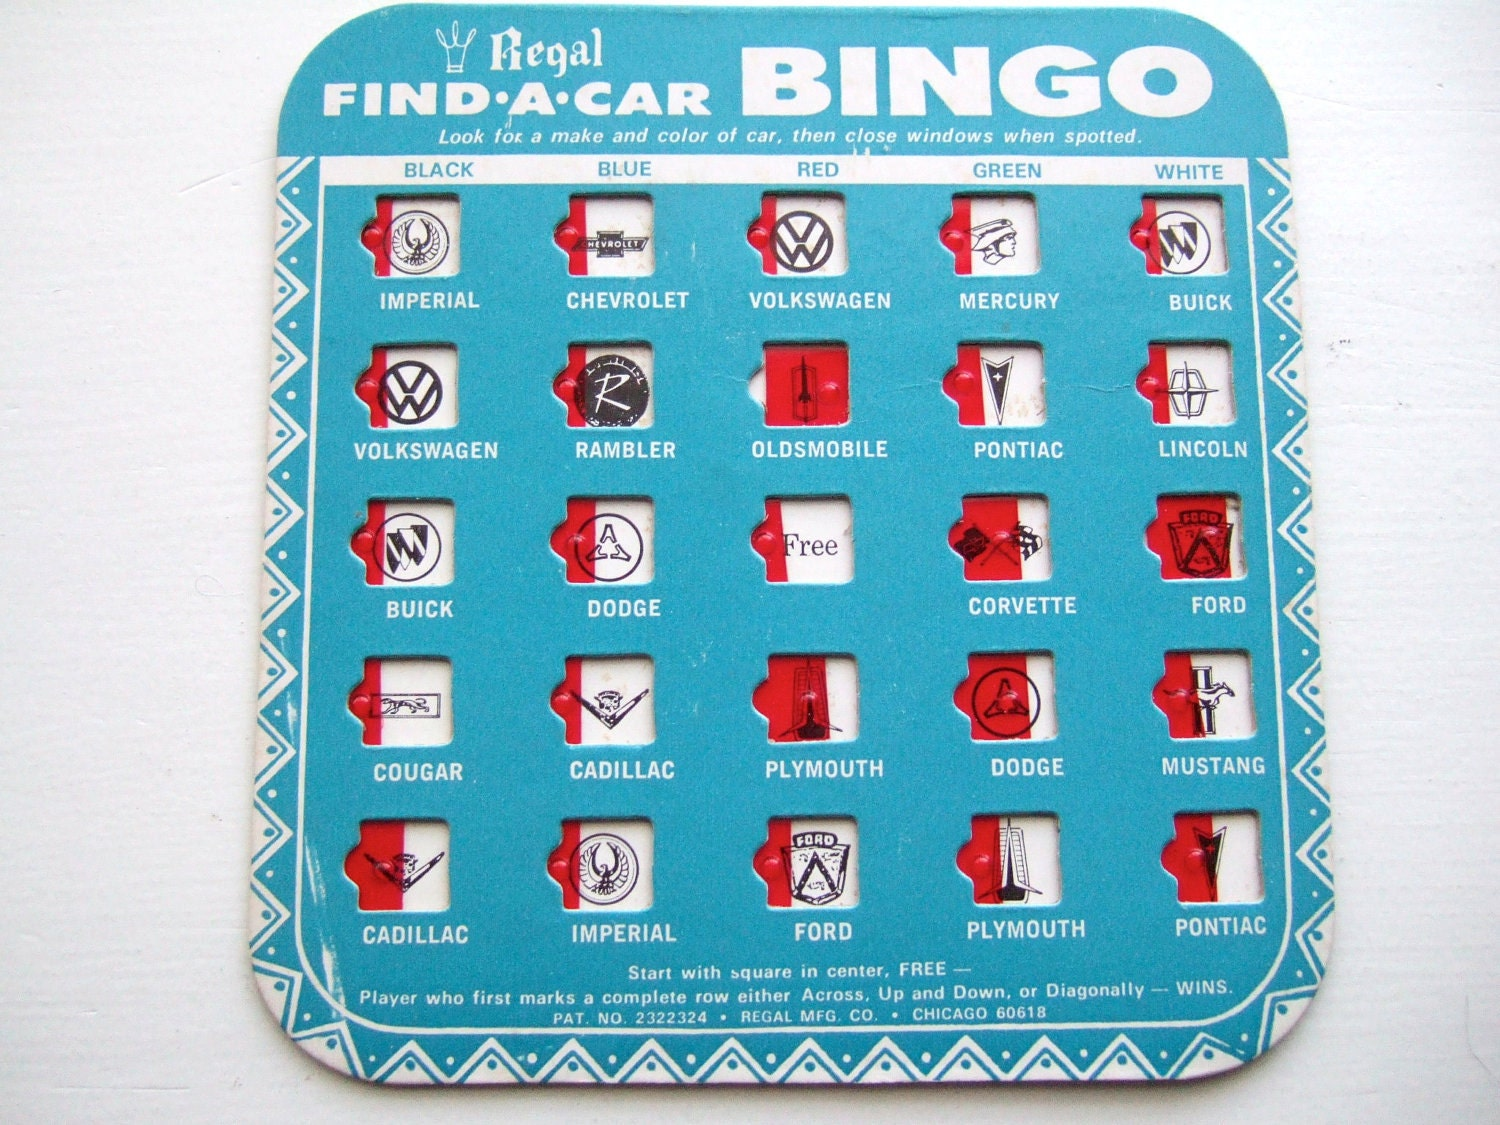 It's just a picture of Inventive Car Bingo Cards